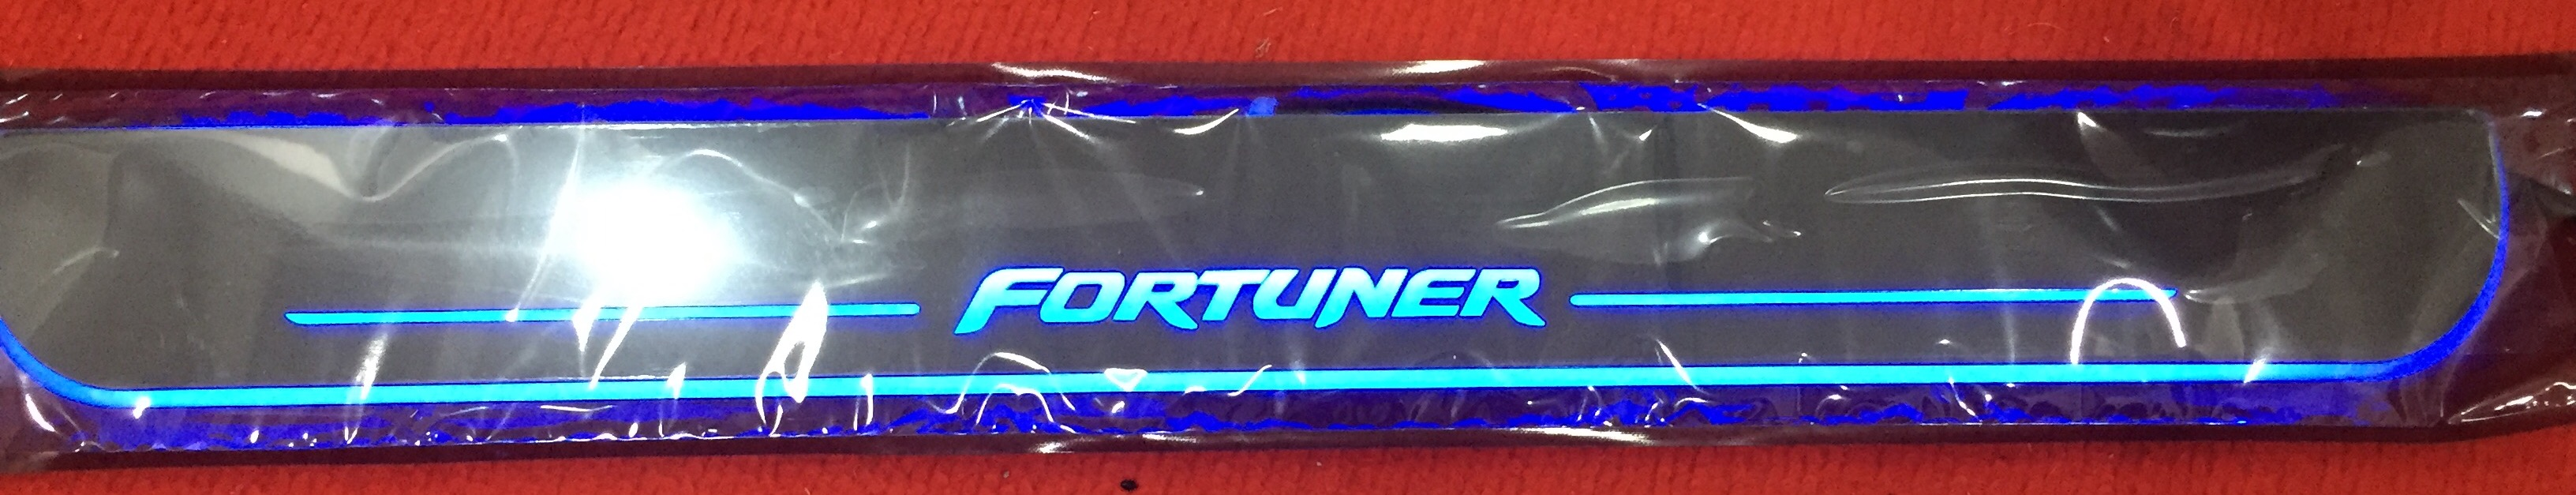 LED sill scuff plate-Fortuner